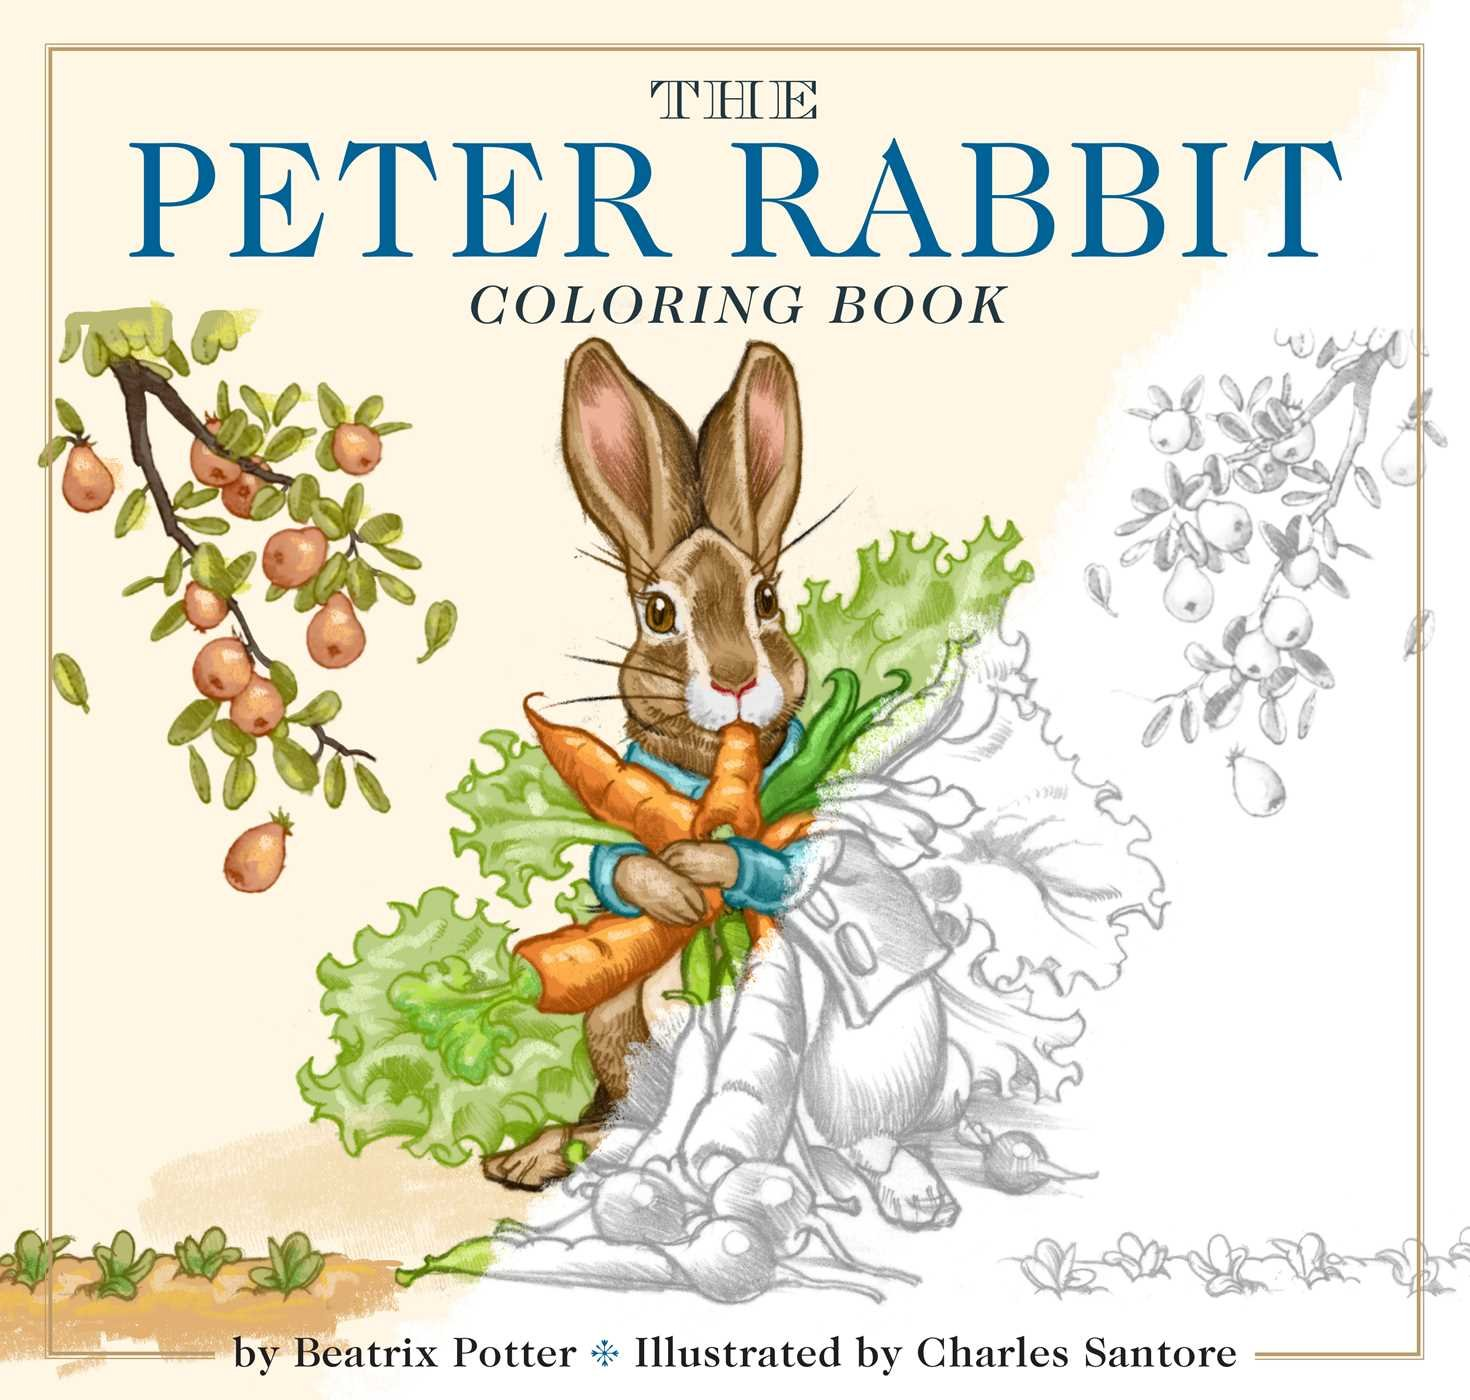 Clip Art Beatrix Potter Coloring Pages an adult coloring book for the whole family beatrix potter peter rabbit a classic editions book